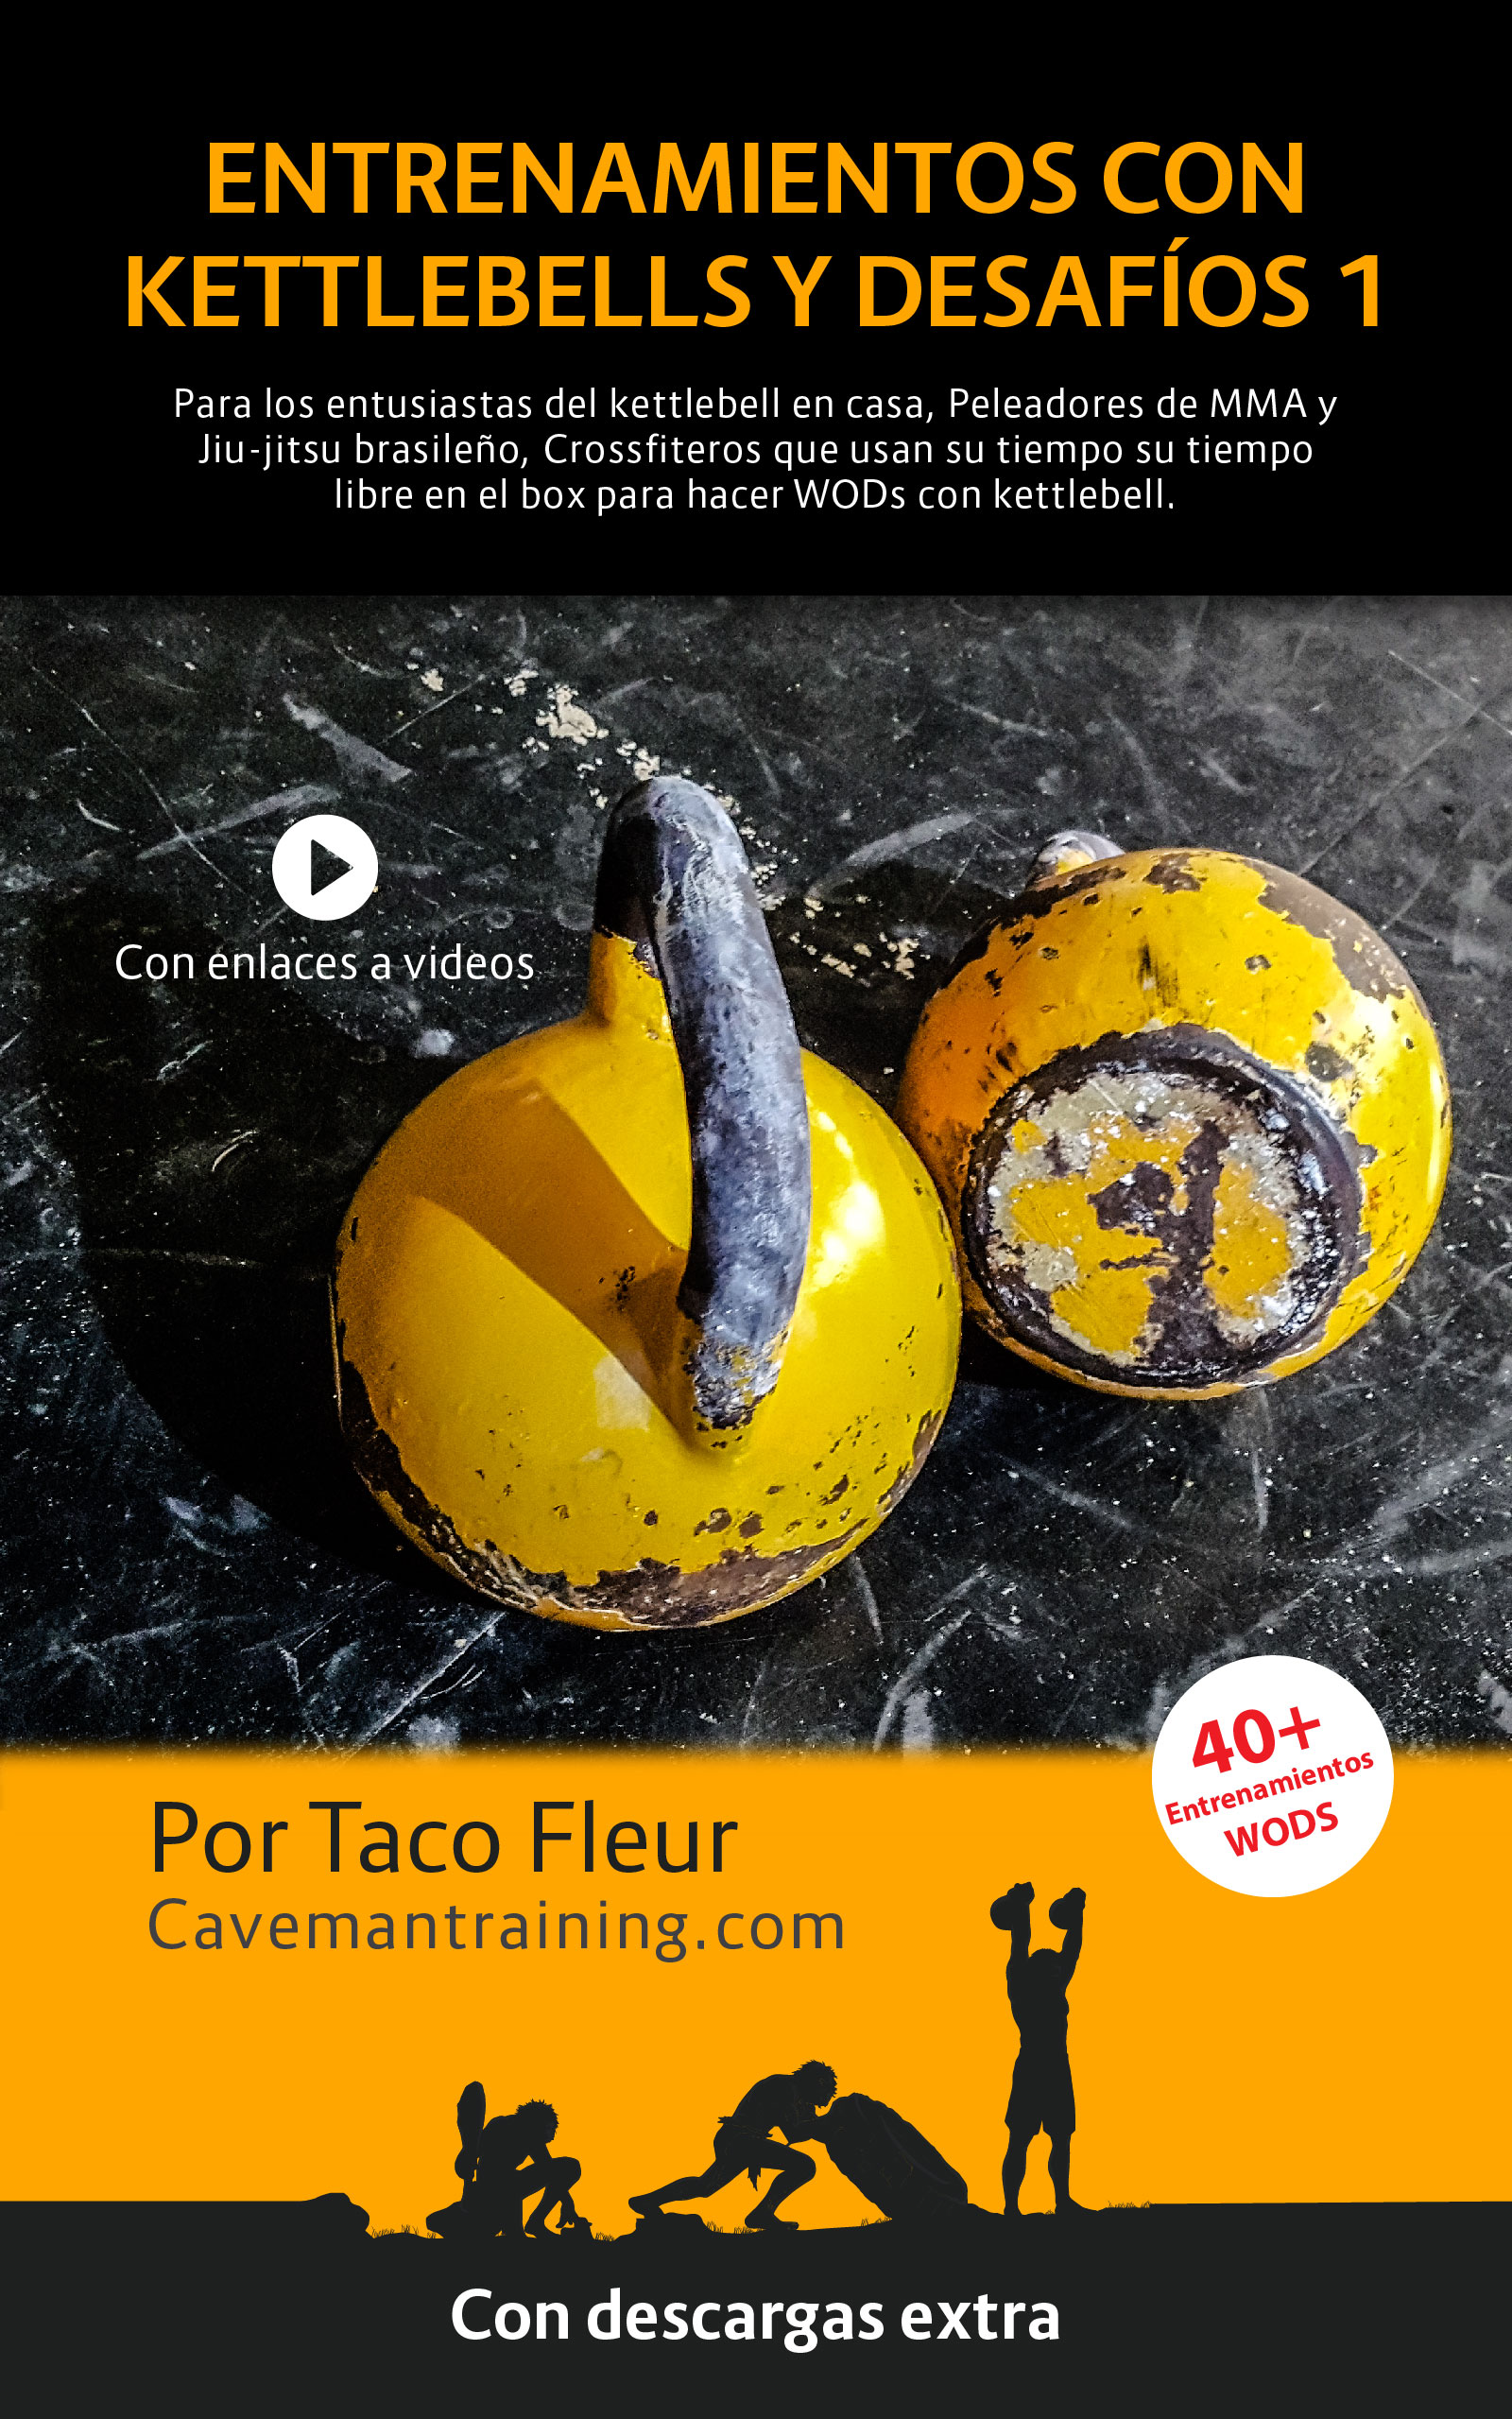 kettlebell workouts and challenges 1 ebook cover spanish 2020